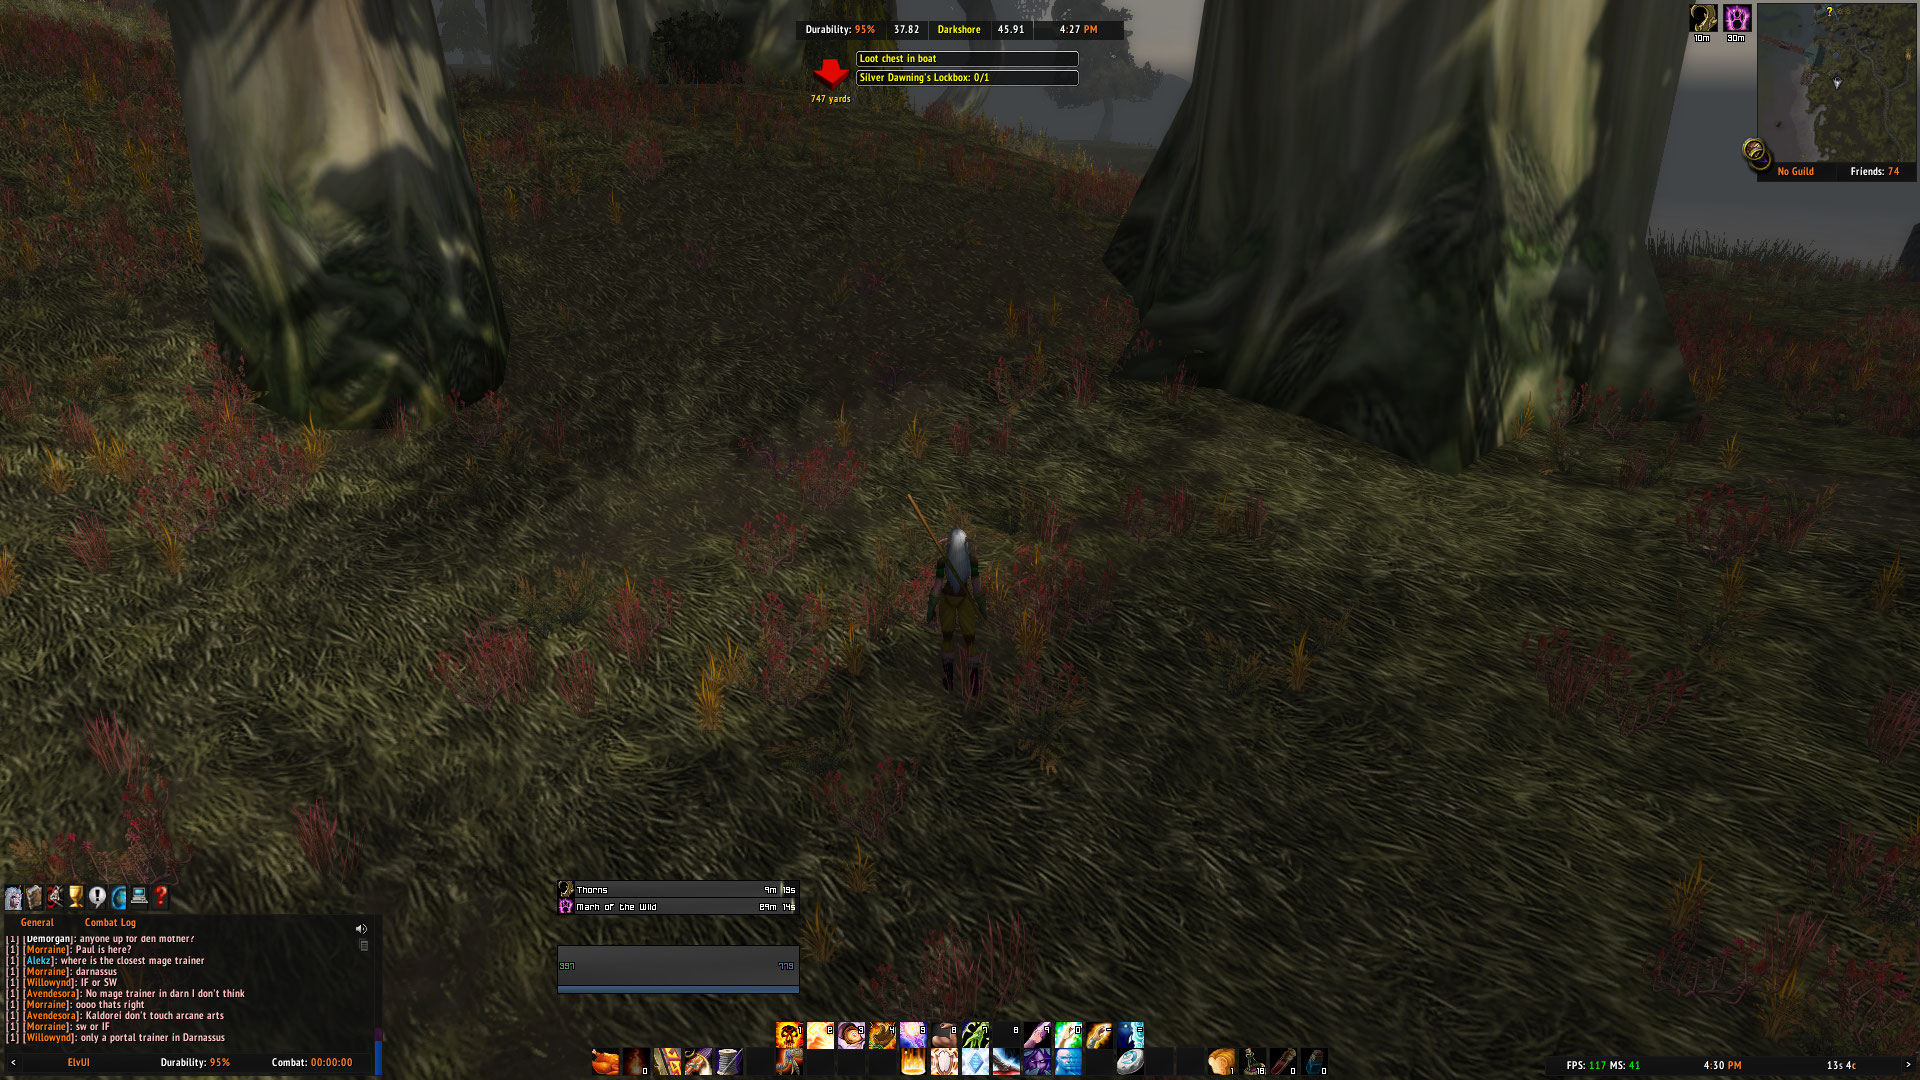 Azeroth Auto Pilot addon - Wrong Way = Red Arrow